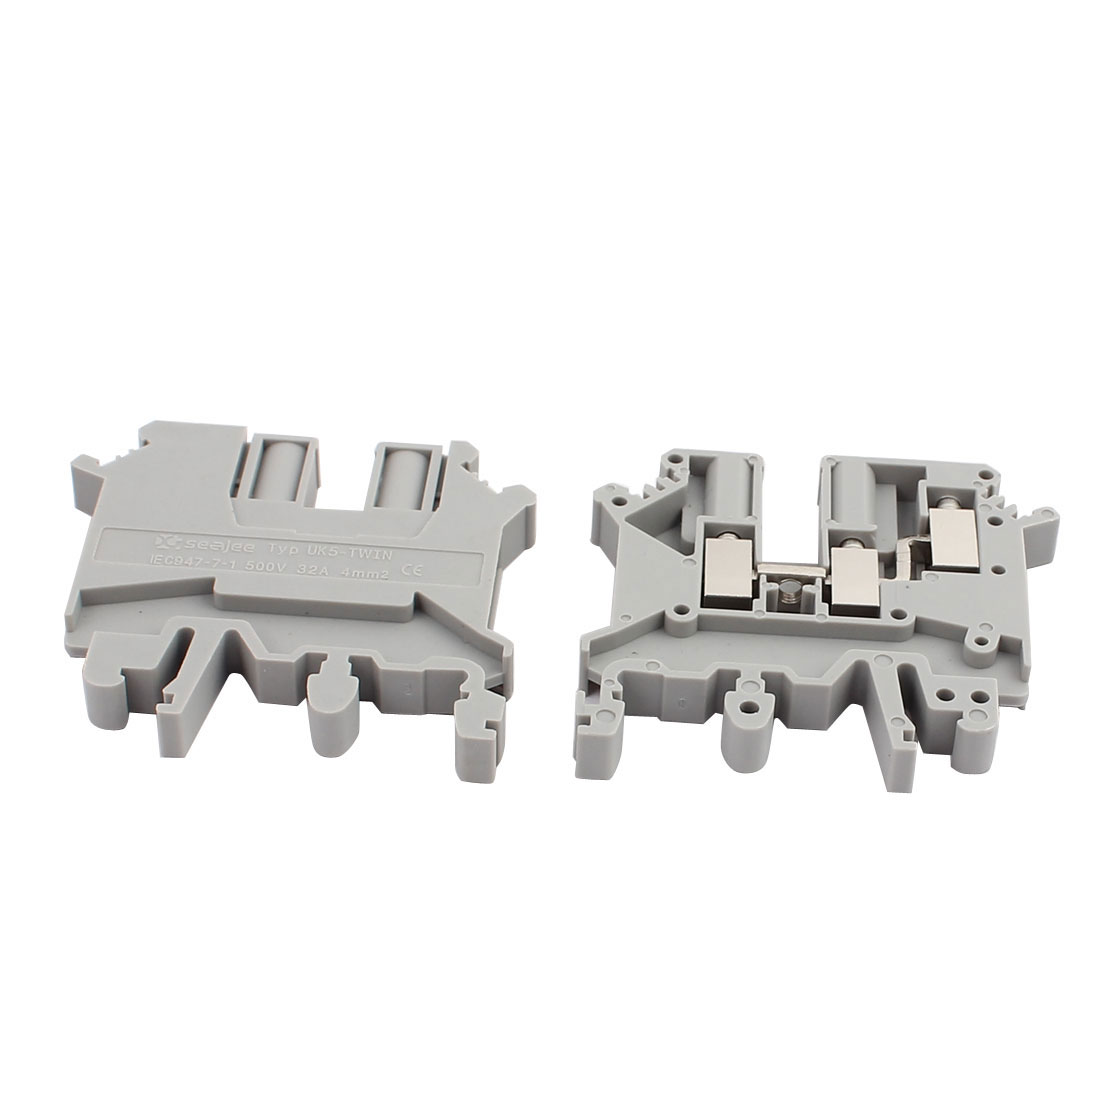 25Pcs UK-5TWIN DIN Rail Mount  One Inlet Double Outlet Terminal Block 500V 32A - image 1 of 3